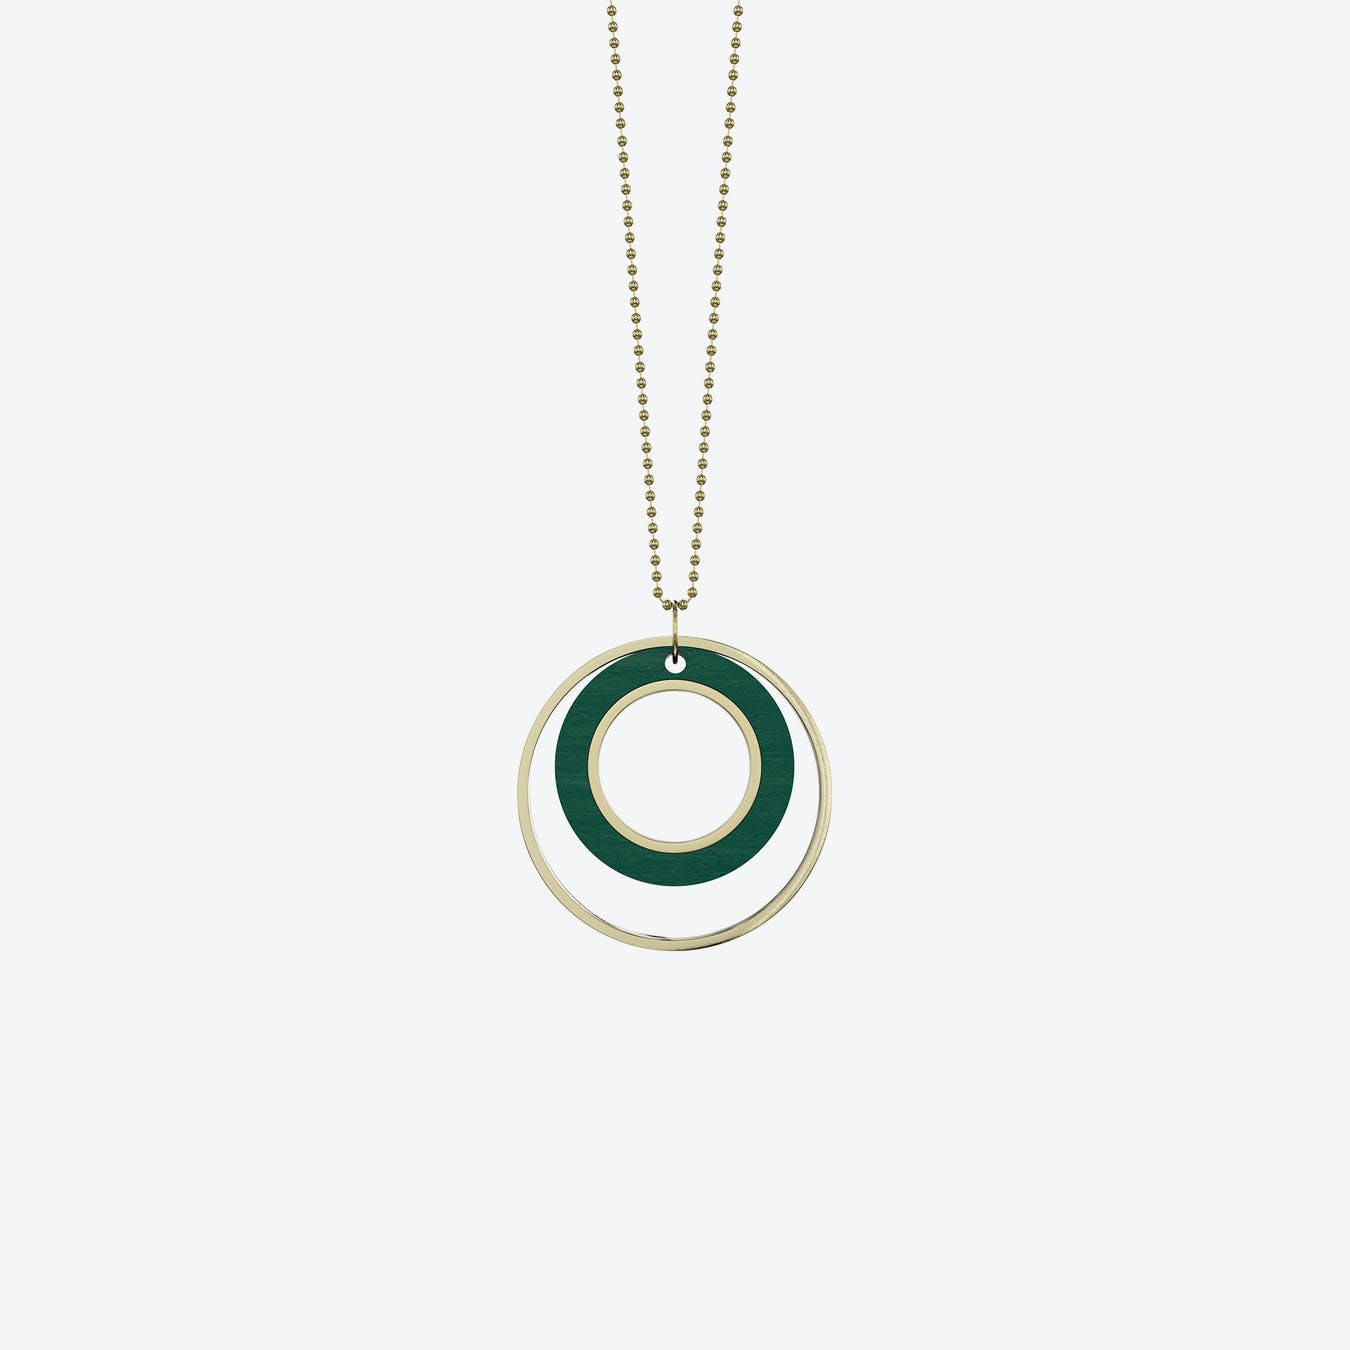 Tempus Necklace in Green Wood & Brass/Gold